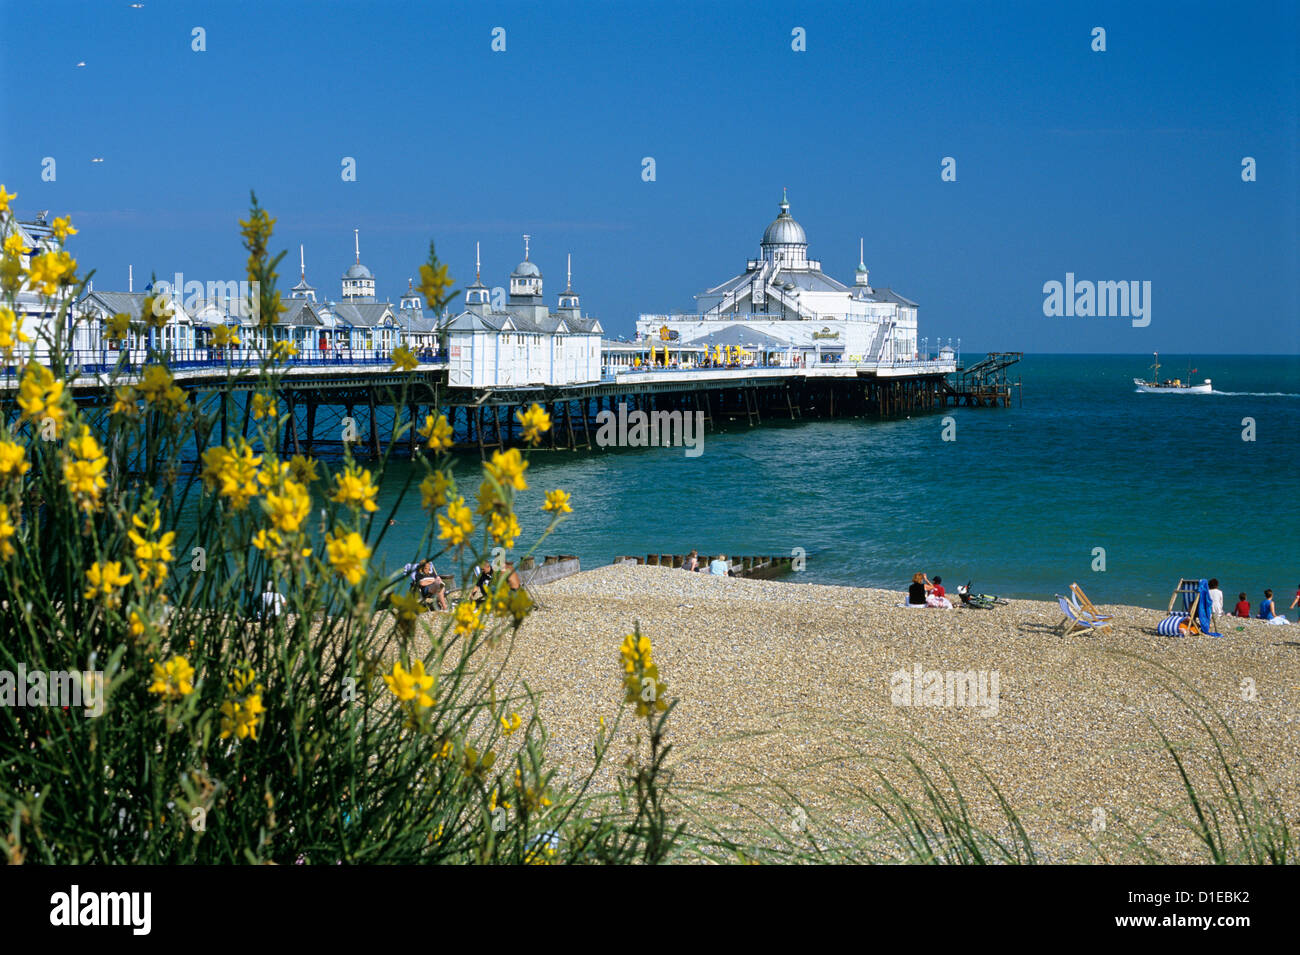 View over beach and pier, Eastbourne, East Sussex, England, United Kingdom, Europe - Stock Image